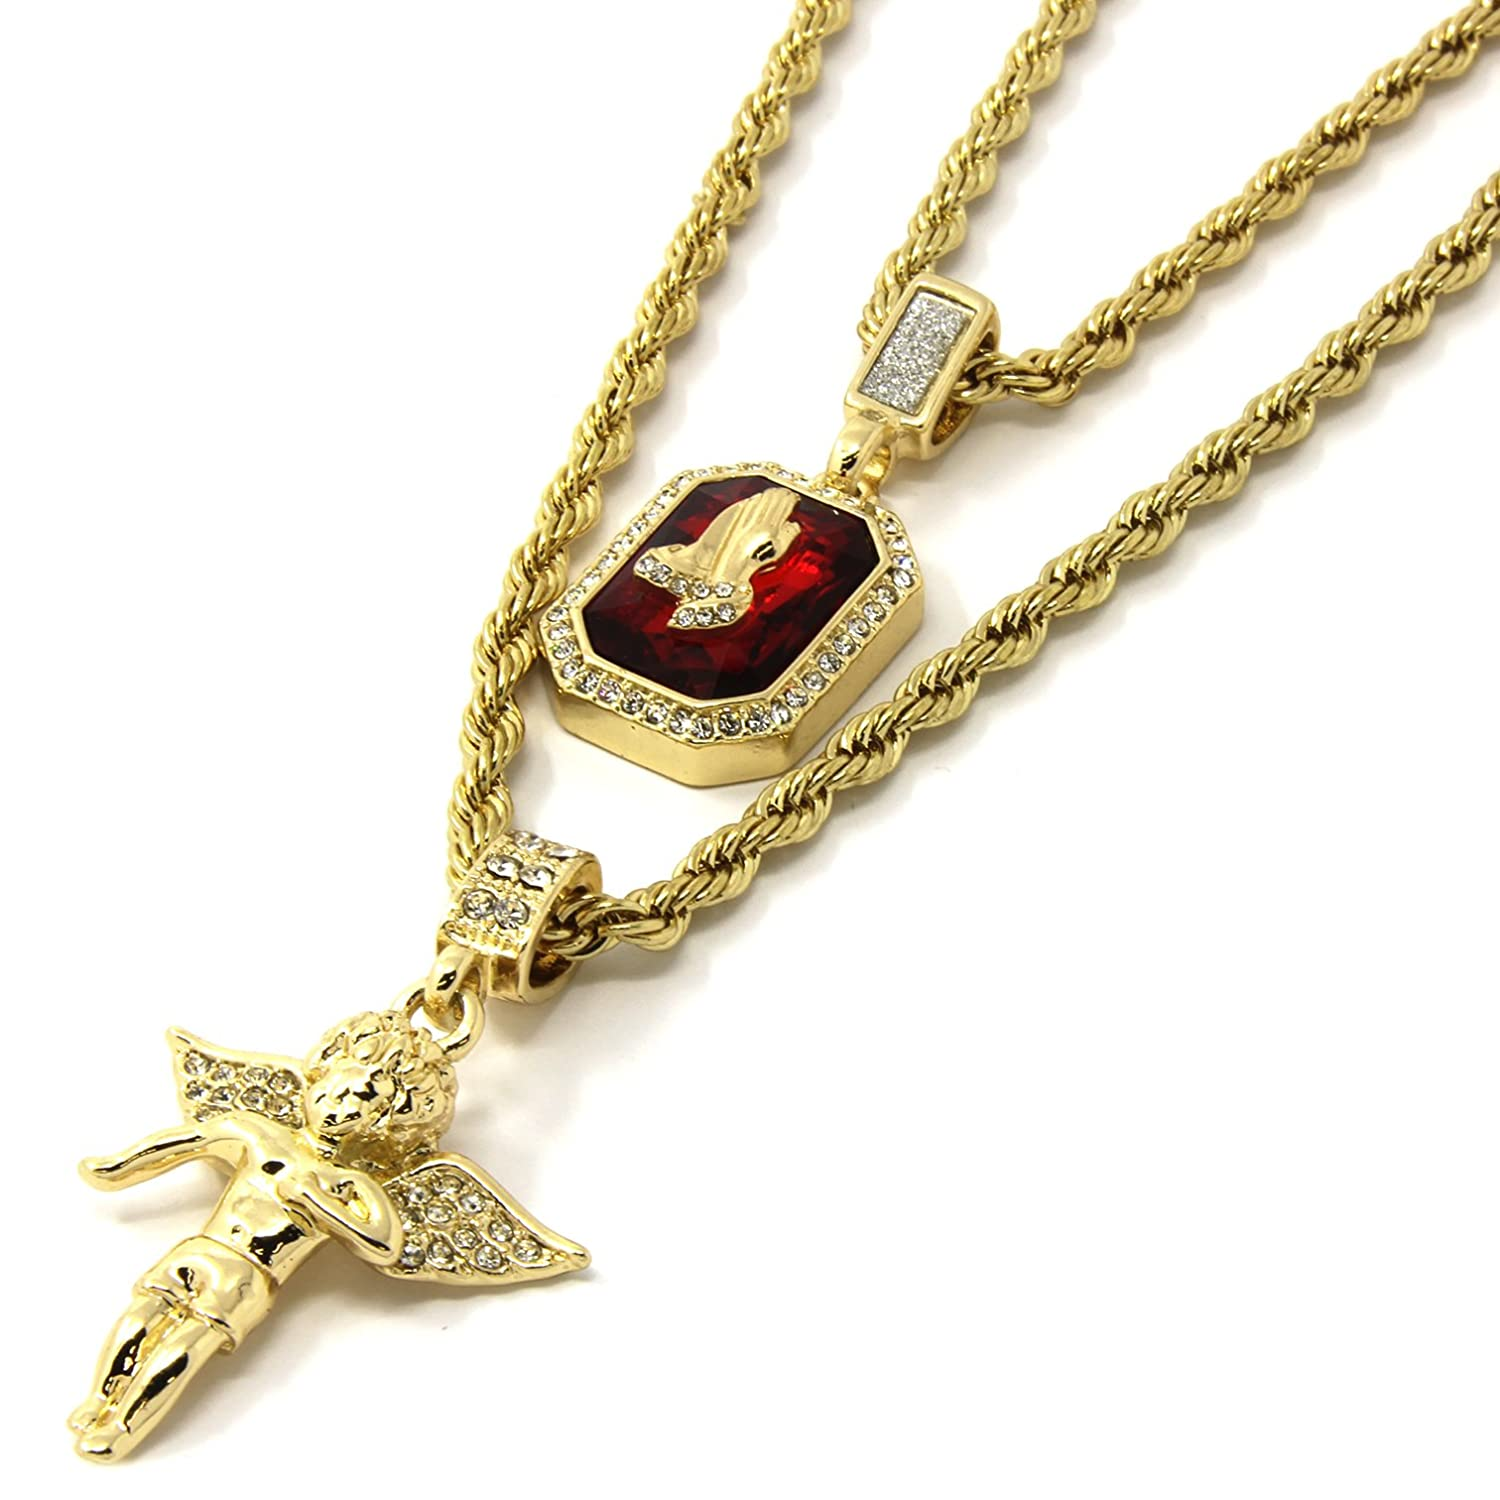 Mens gold angel p ruby bundle set cz pendant hip hop 24 30 mens gold angel p ruby bundle set cz pendant hip hop 24 30 rope chain d463 amazon mozeypictures Choice Image